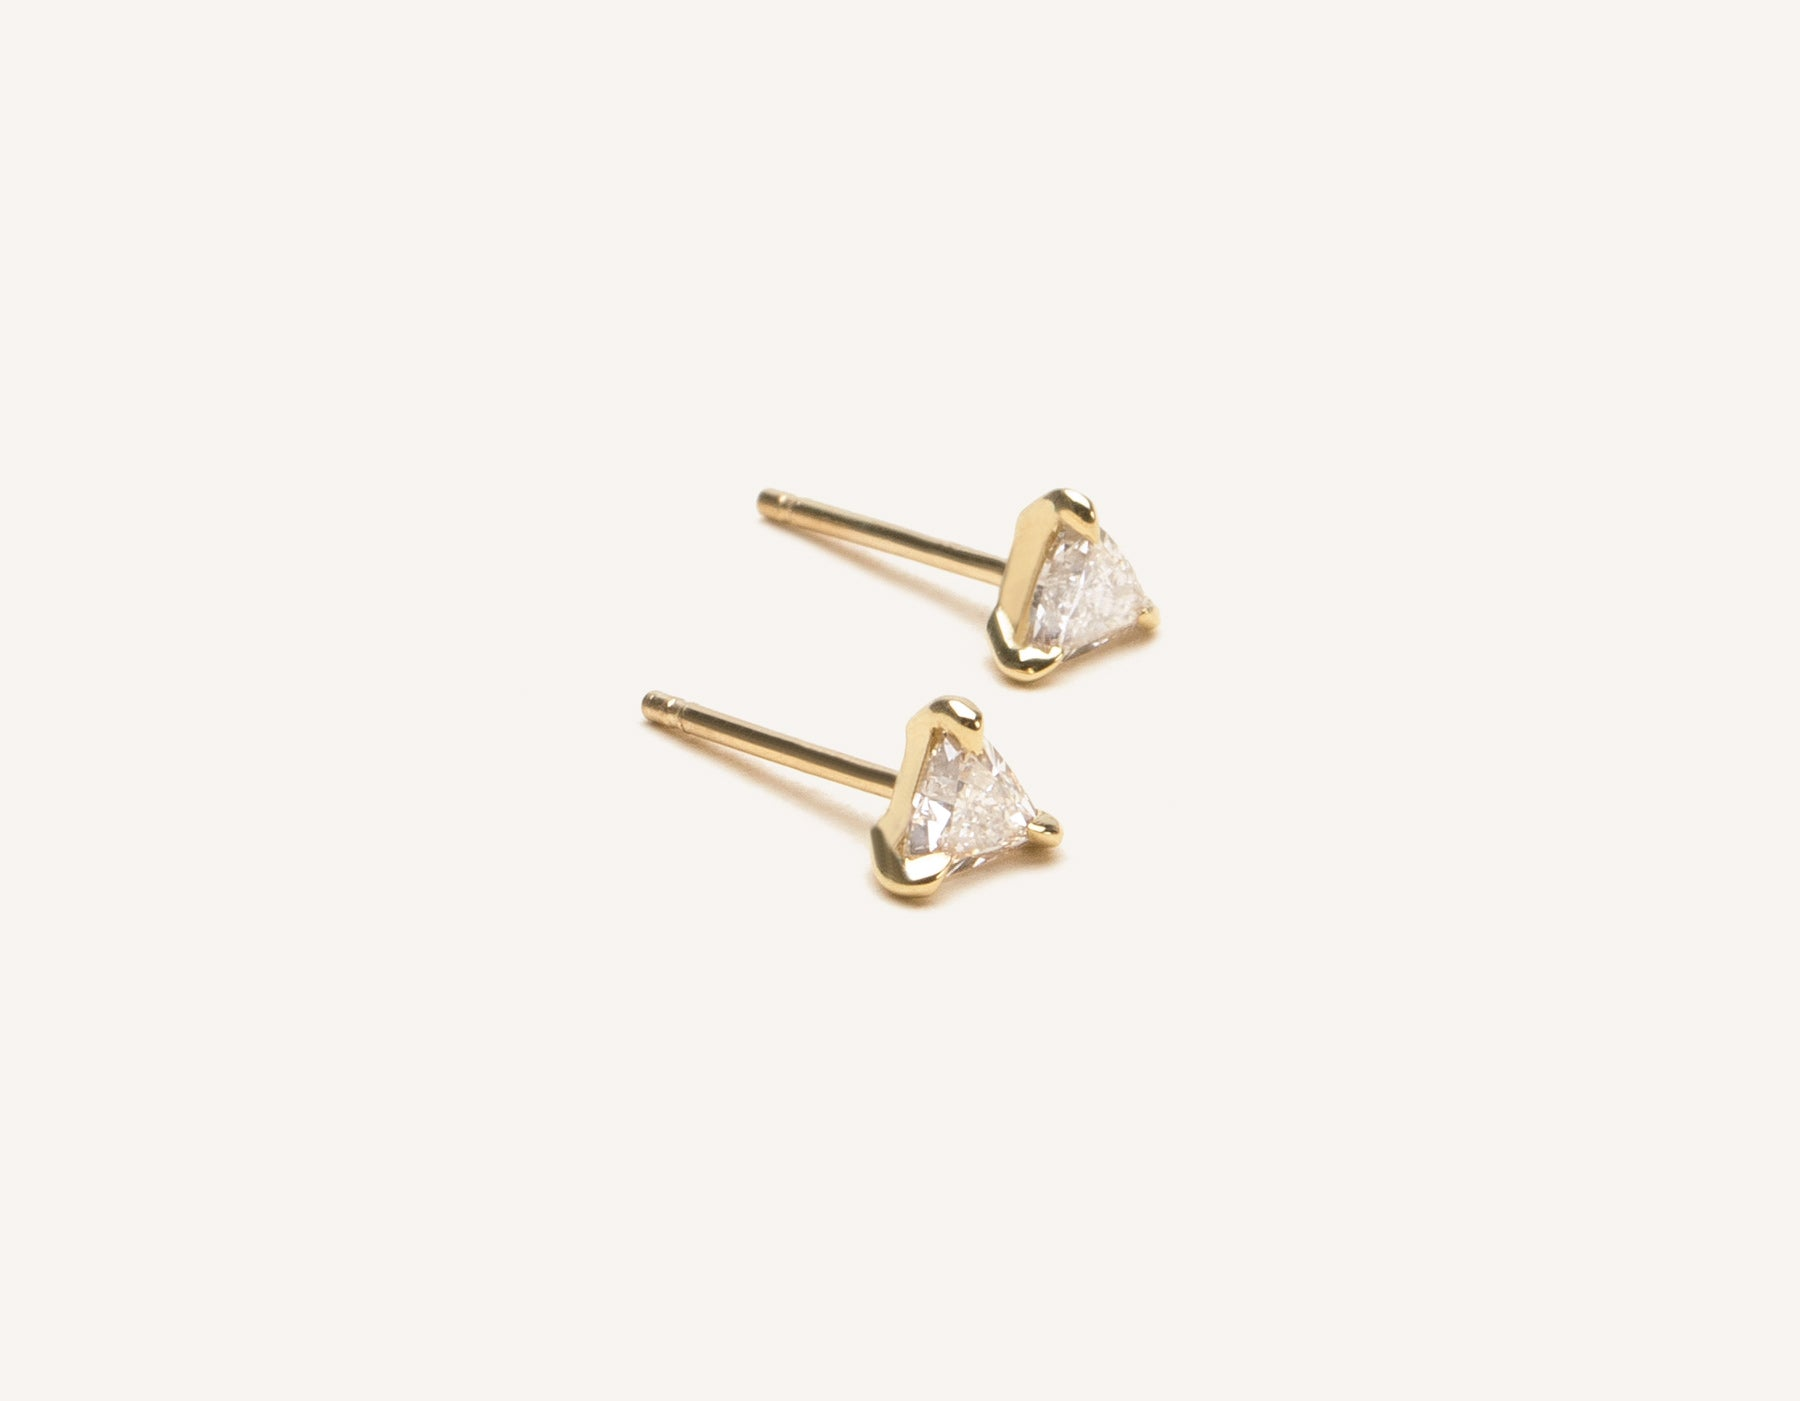 Elegant minimalist 14k solid gold triangle Trillion Diamond Earring studs by Vrai and Oro, 14K Yellow Gold